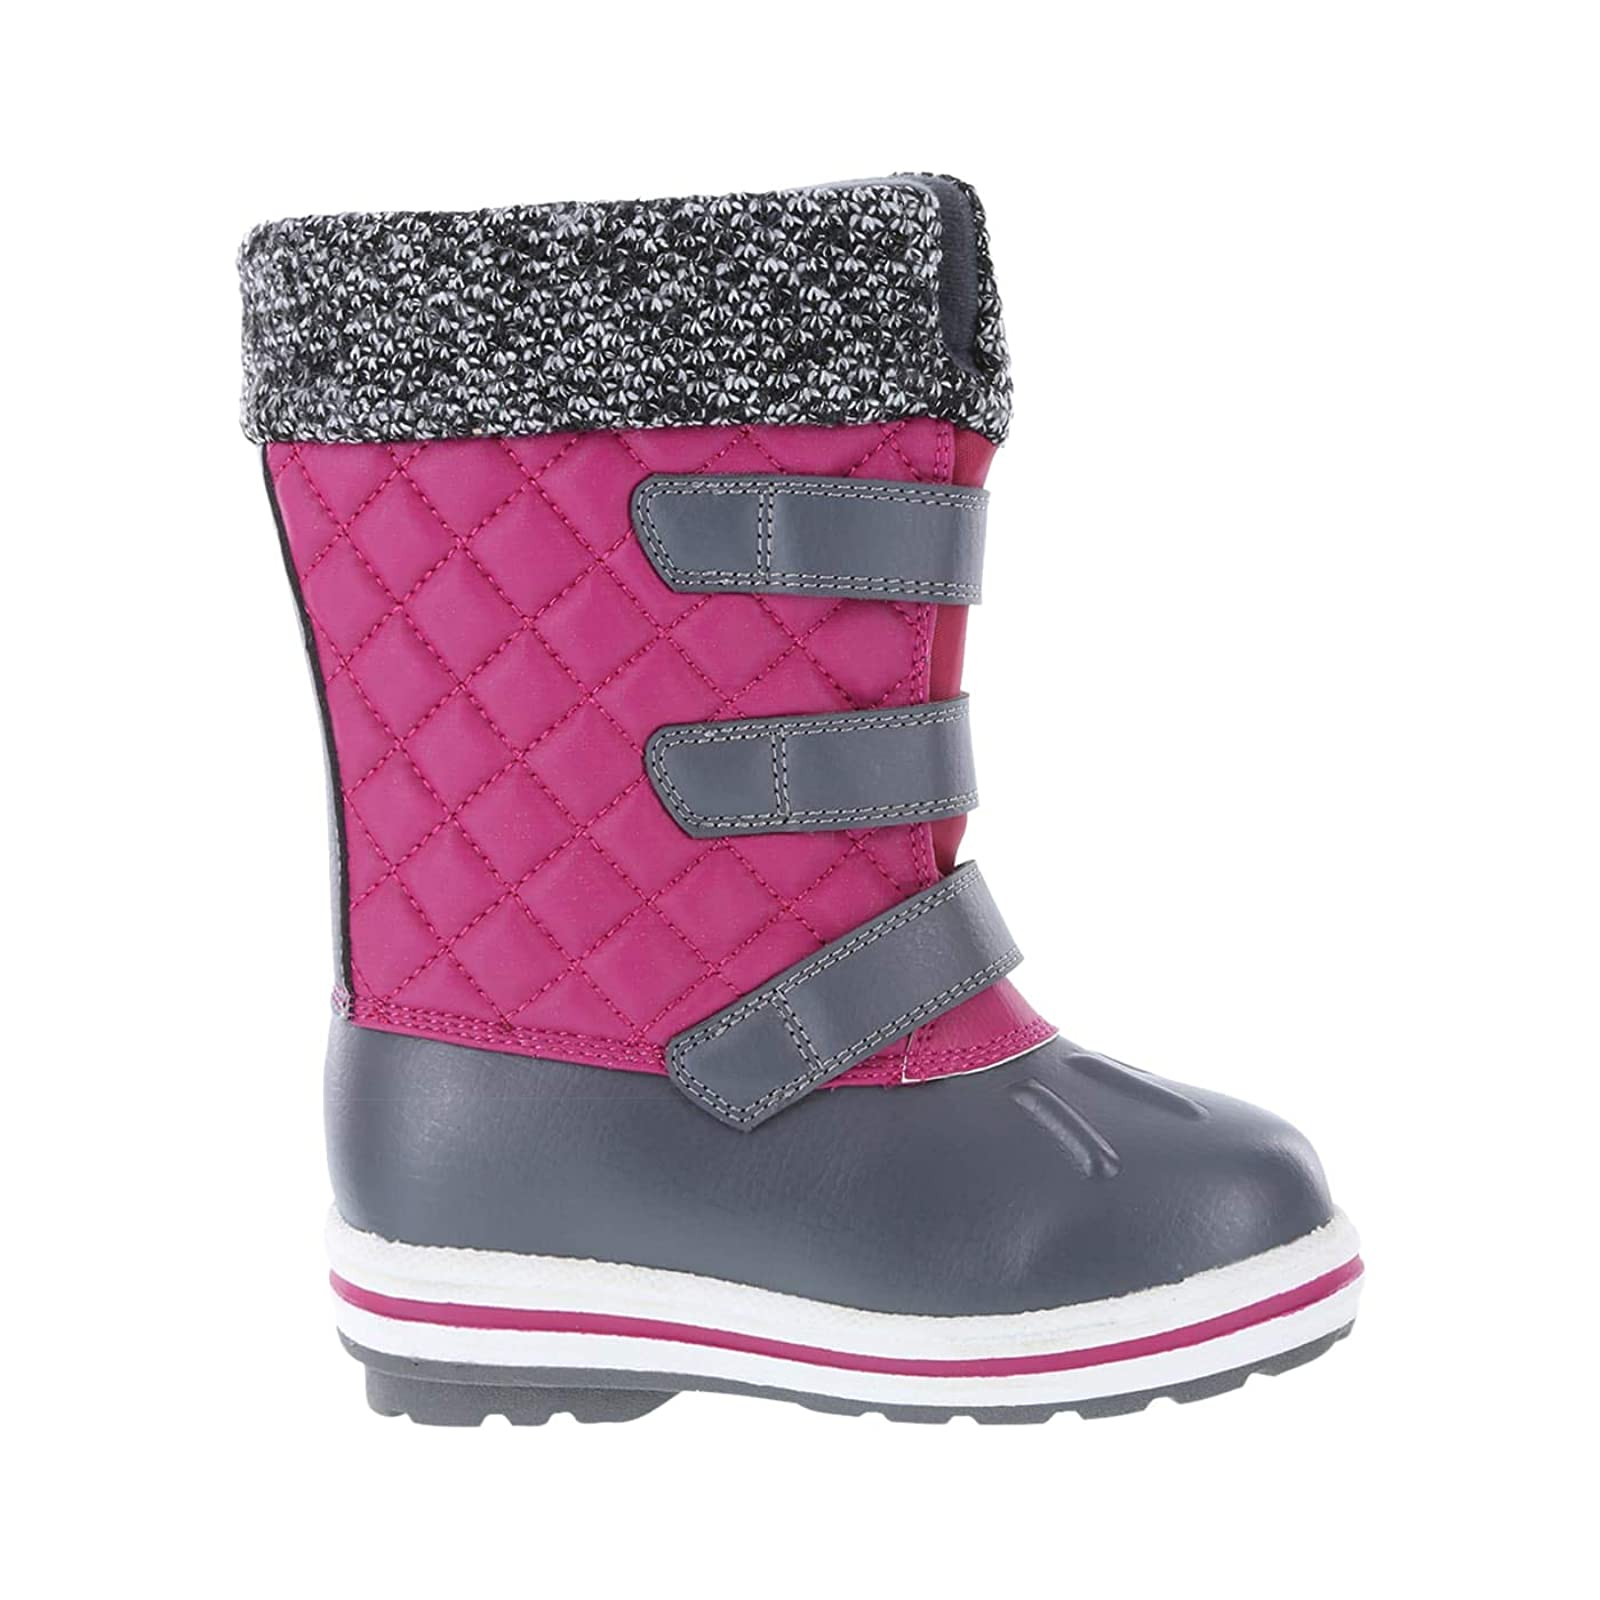 Rugged Outback Raspberry Grey Girls' Toddler -30 177447120 - 1